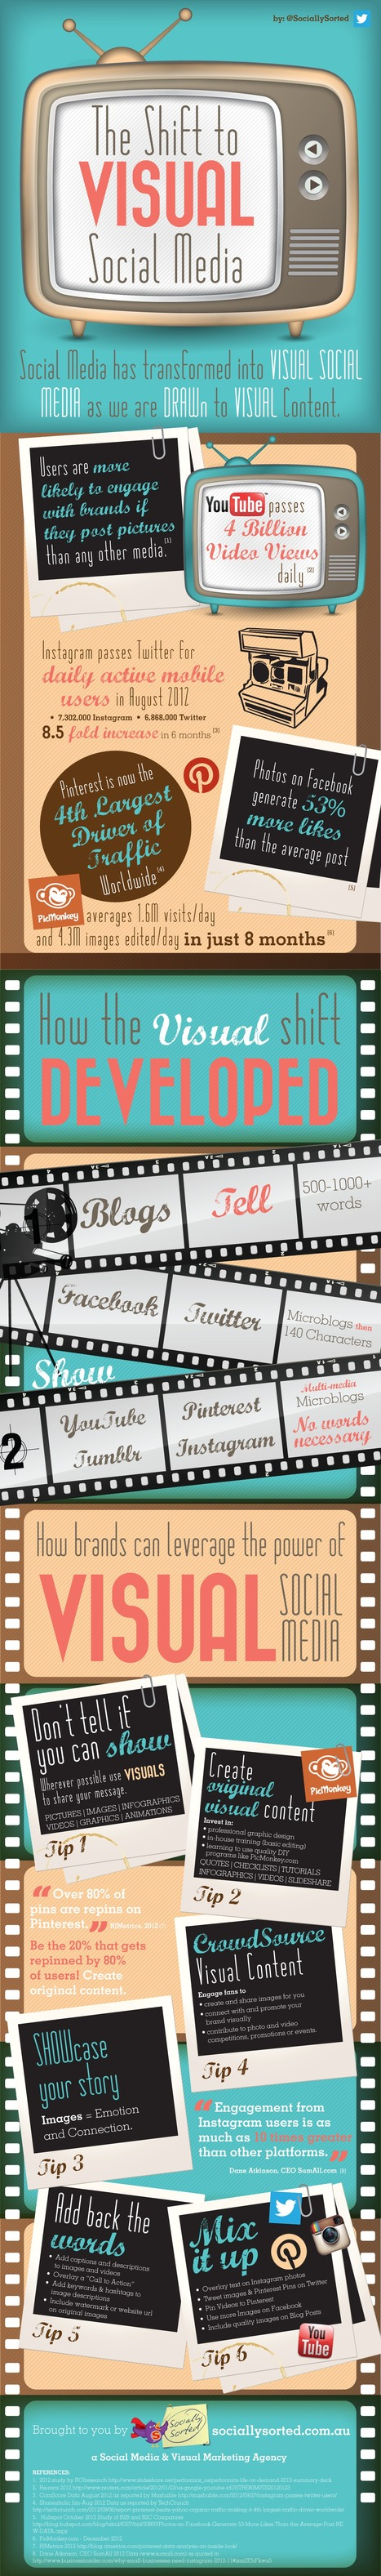 The Shift to Visual Social Media - 6 Tips for Business [Infographic] | Socially Sorted | Social Media Resources & e-learning | Scoop.it